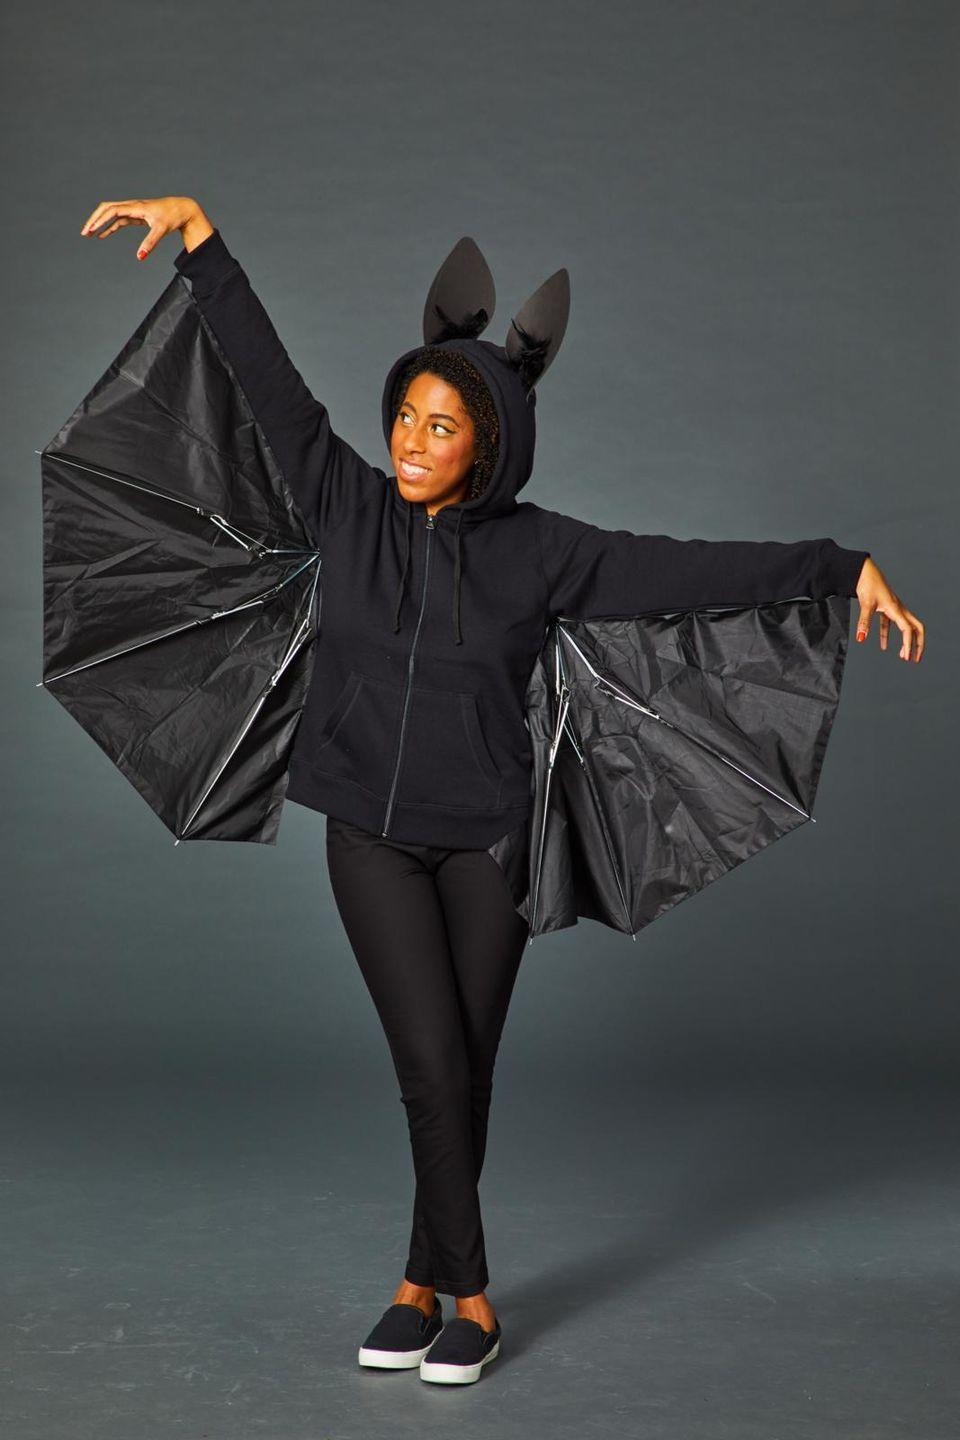 """<p>Upcycle an old, possibly broken umbrella into a cute costume. Just cut your umbrella in half and use black safety pins or hot glue to attach it to the arms of a black hoodie. Fasten the hinges of the metal umbrella pieces with black electrical tape, so they can properly fold. Create ears with foam core and feathers for added texture. </p><p><a class=""""link rapid-noclick-resp"""" href=""""https://www.amazon.com/Repel-Windproof-Travel-Umbrella-Coating/dp/B0160HYB8S/?tag=syn-yahoo-20&ascsubtag=%5Bartid%7C10055.g.2750%5Bsrc%7Cyahoo-us"""" rel=""""nofollow noopener"""" target=""""_blank"""" data-ylk=""""slk:SHOP BLACK UMBRELLAS"""">SHOP BLACK UMBRELLAS </a></p>"""